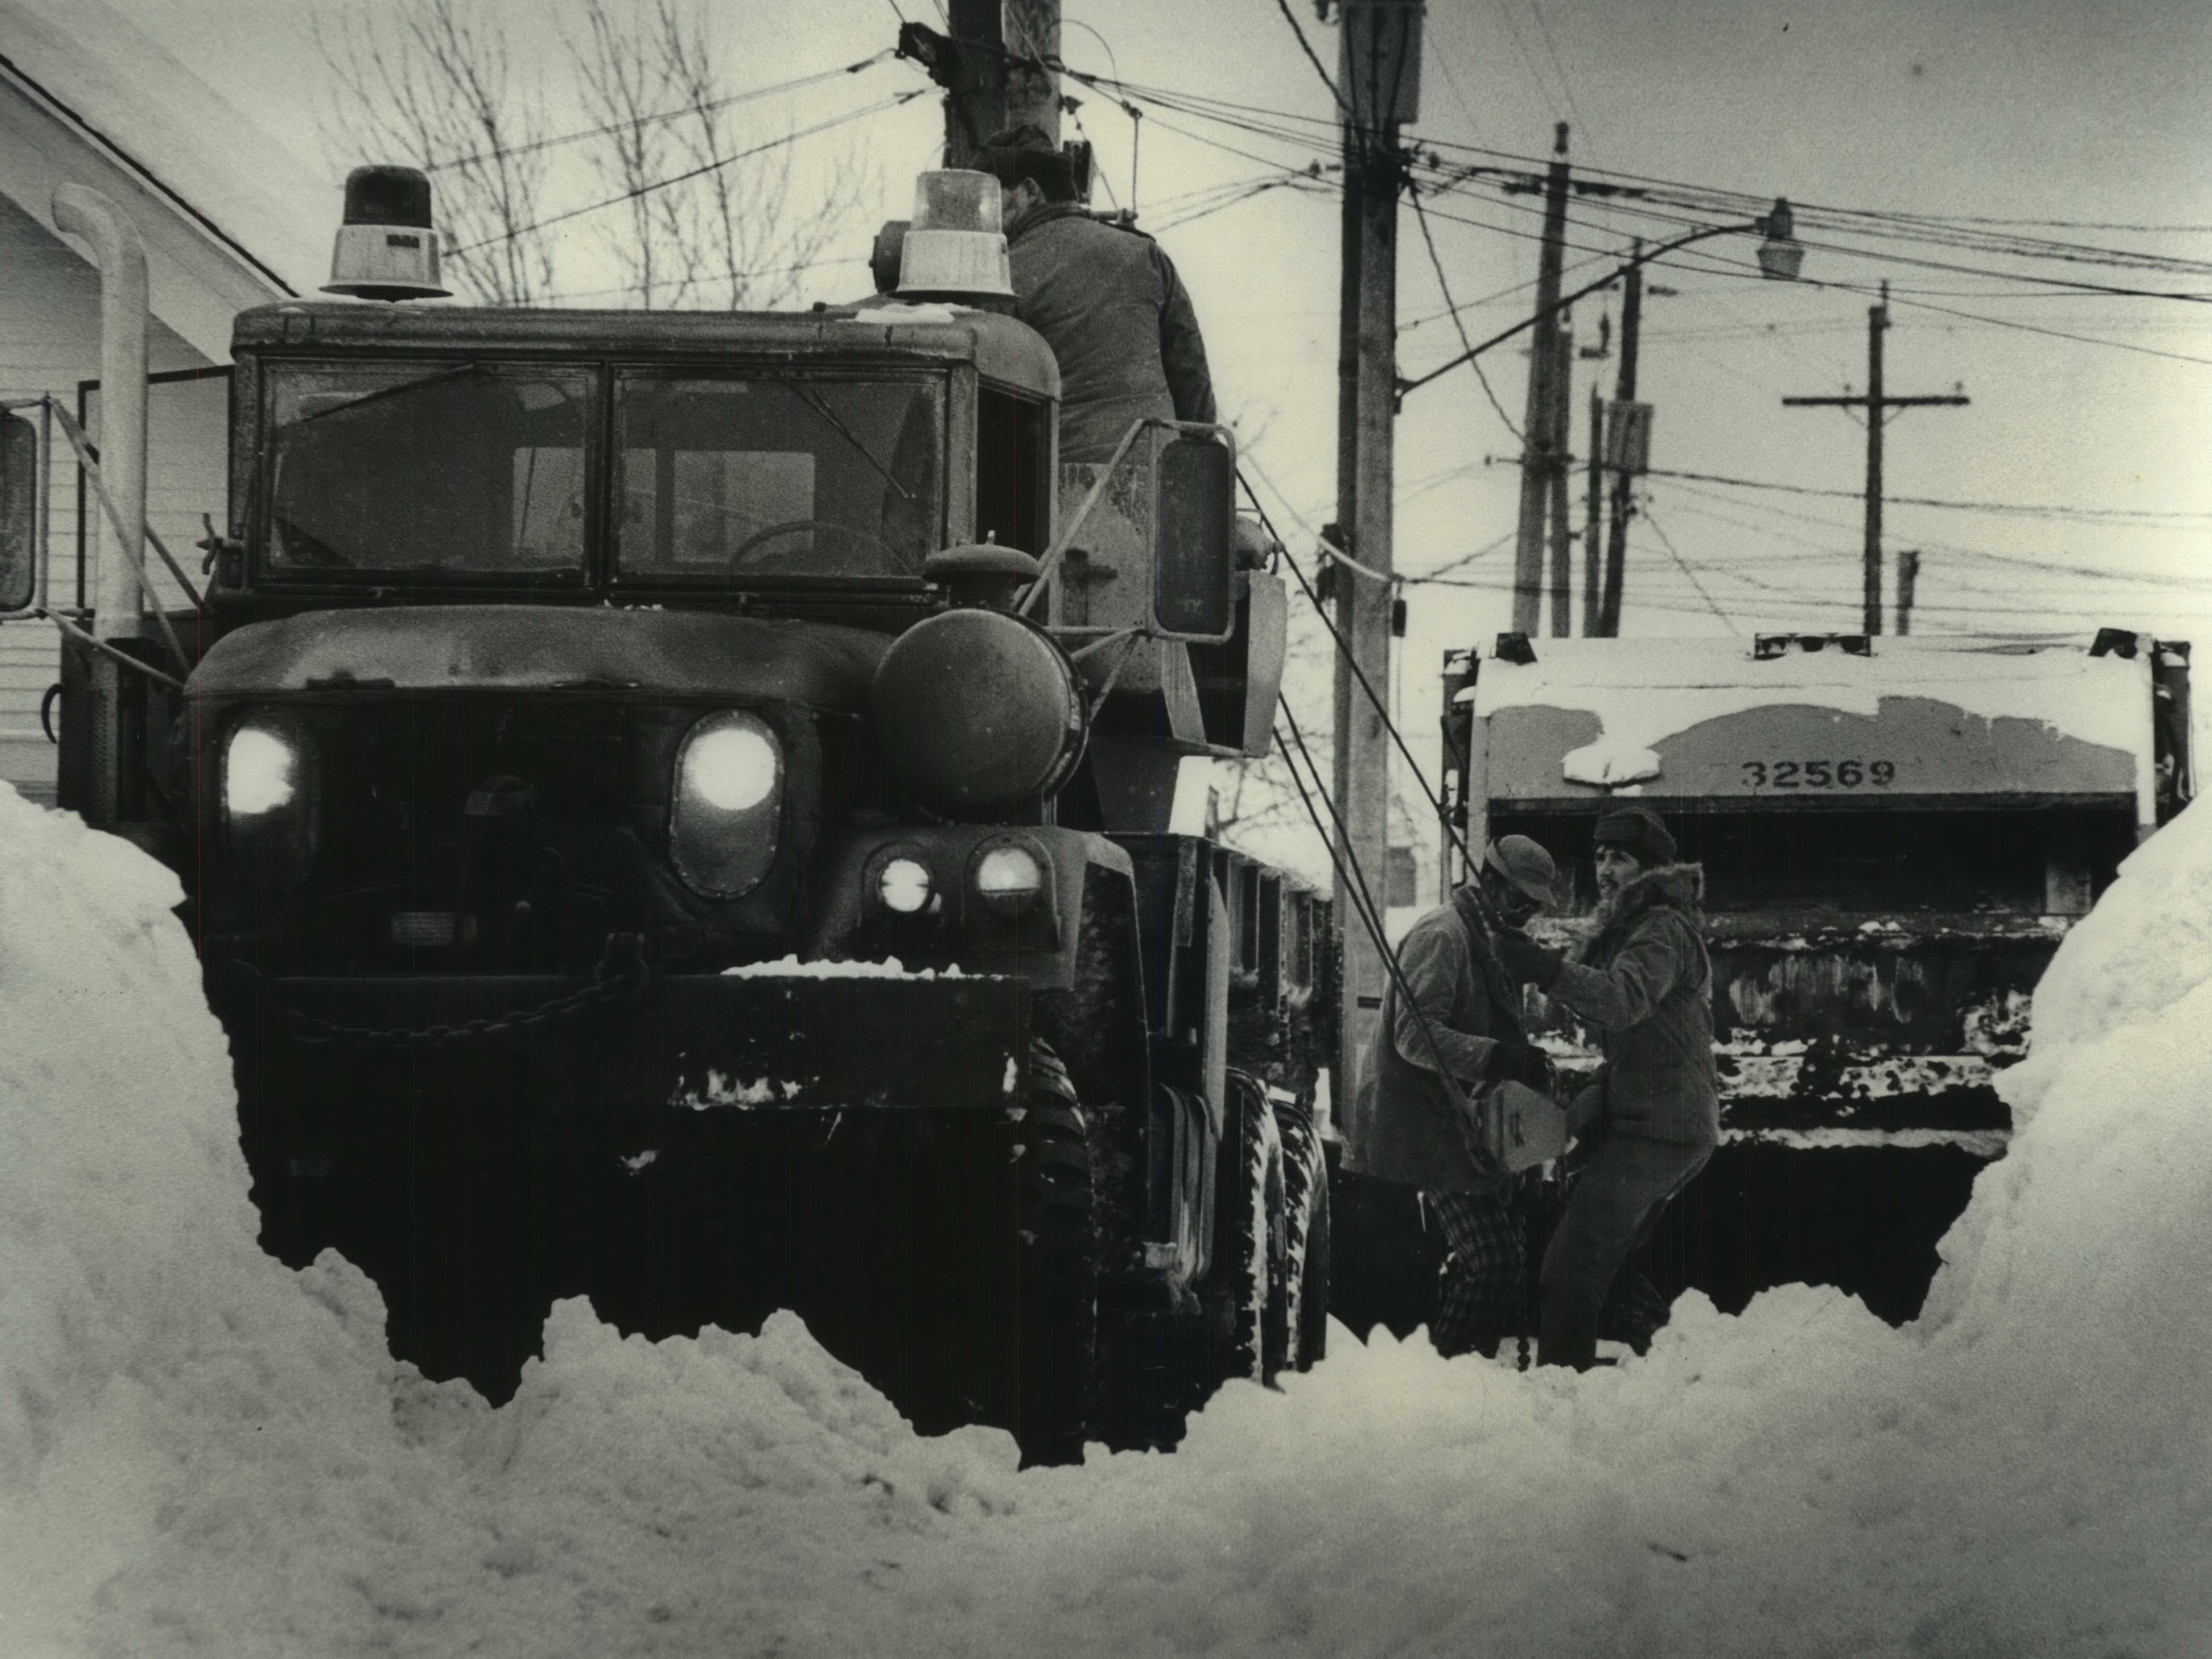 Spec. 5 Timothy Wedekind (right) of Baraboo and a city garbage truck driver test tow cables stretching from one of the National Guard tow trucks sent to Milwaukee to aid in snow emergency operations on Jan. 17. 1979. Staff Sgt. John Brown of Oregon manned the controls on the tow truck. The two guardsmen are attached to Company D, 132nd Support Battalion. The garbage truck was stuck in the snow in an alley between North 53rd and North 54th streets at West Hadley Street. This photo was published on the front page of the Jan. 18, 1979, Milwaukee Sentinel.